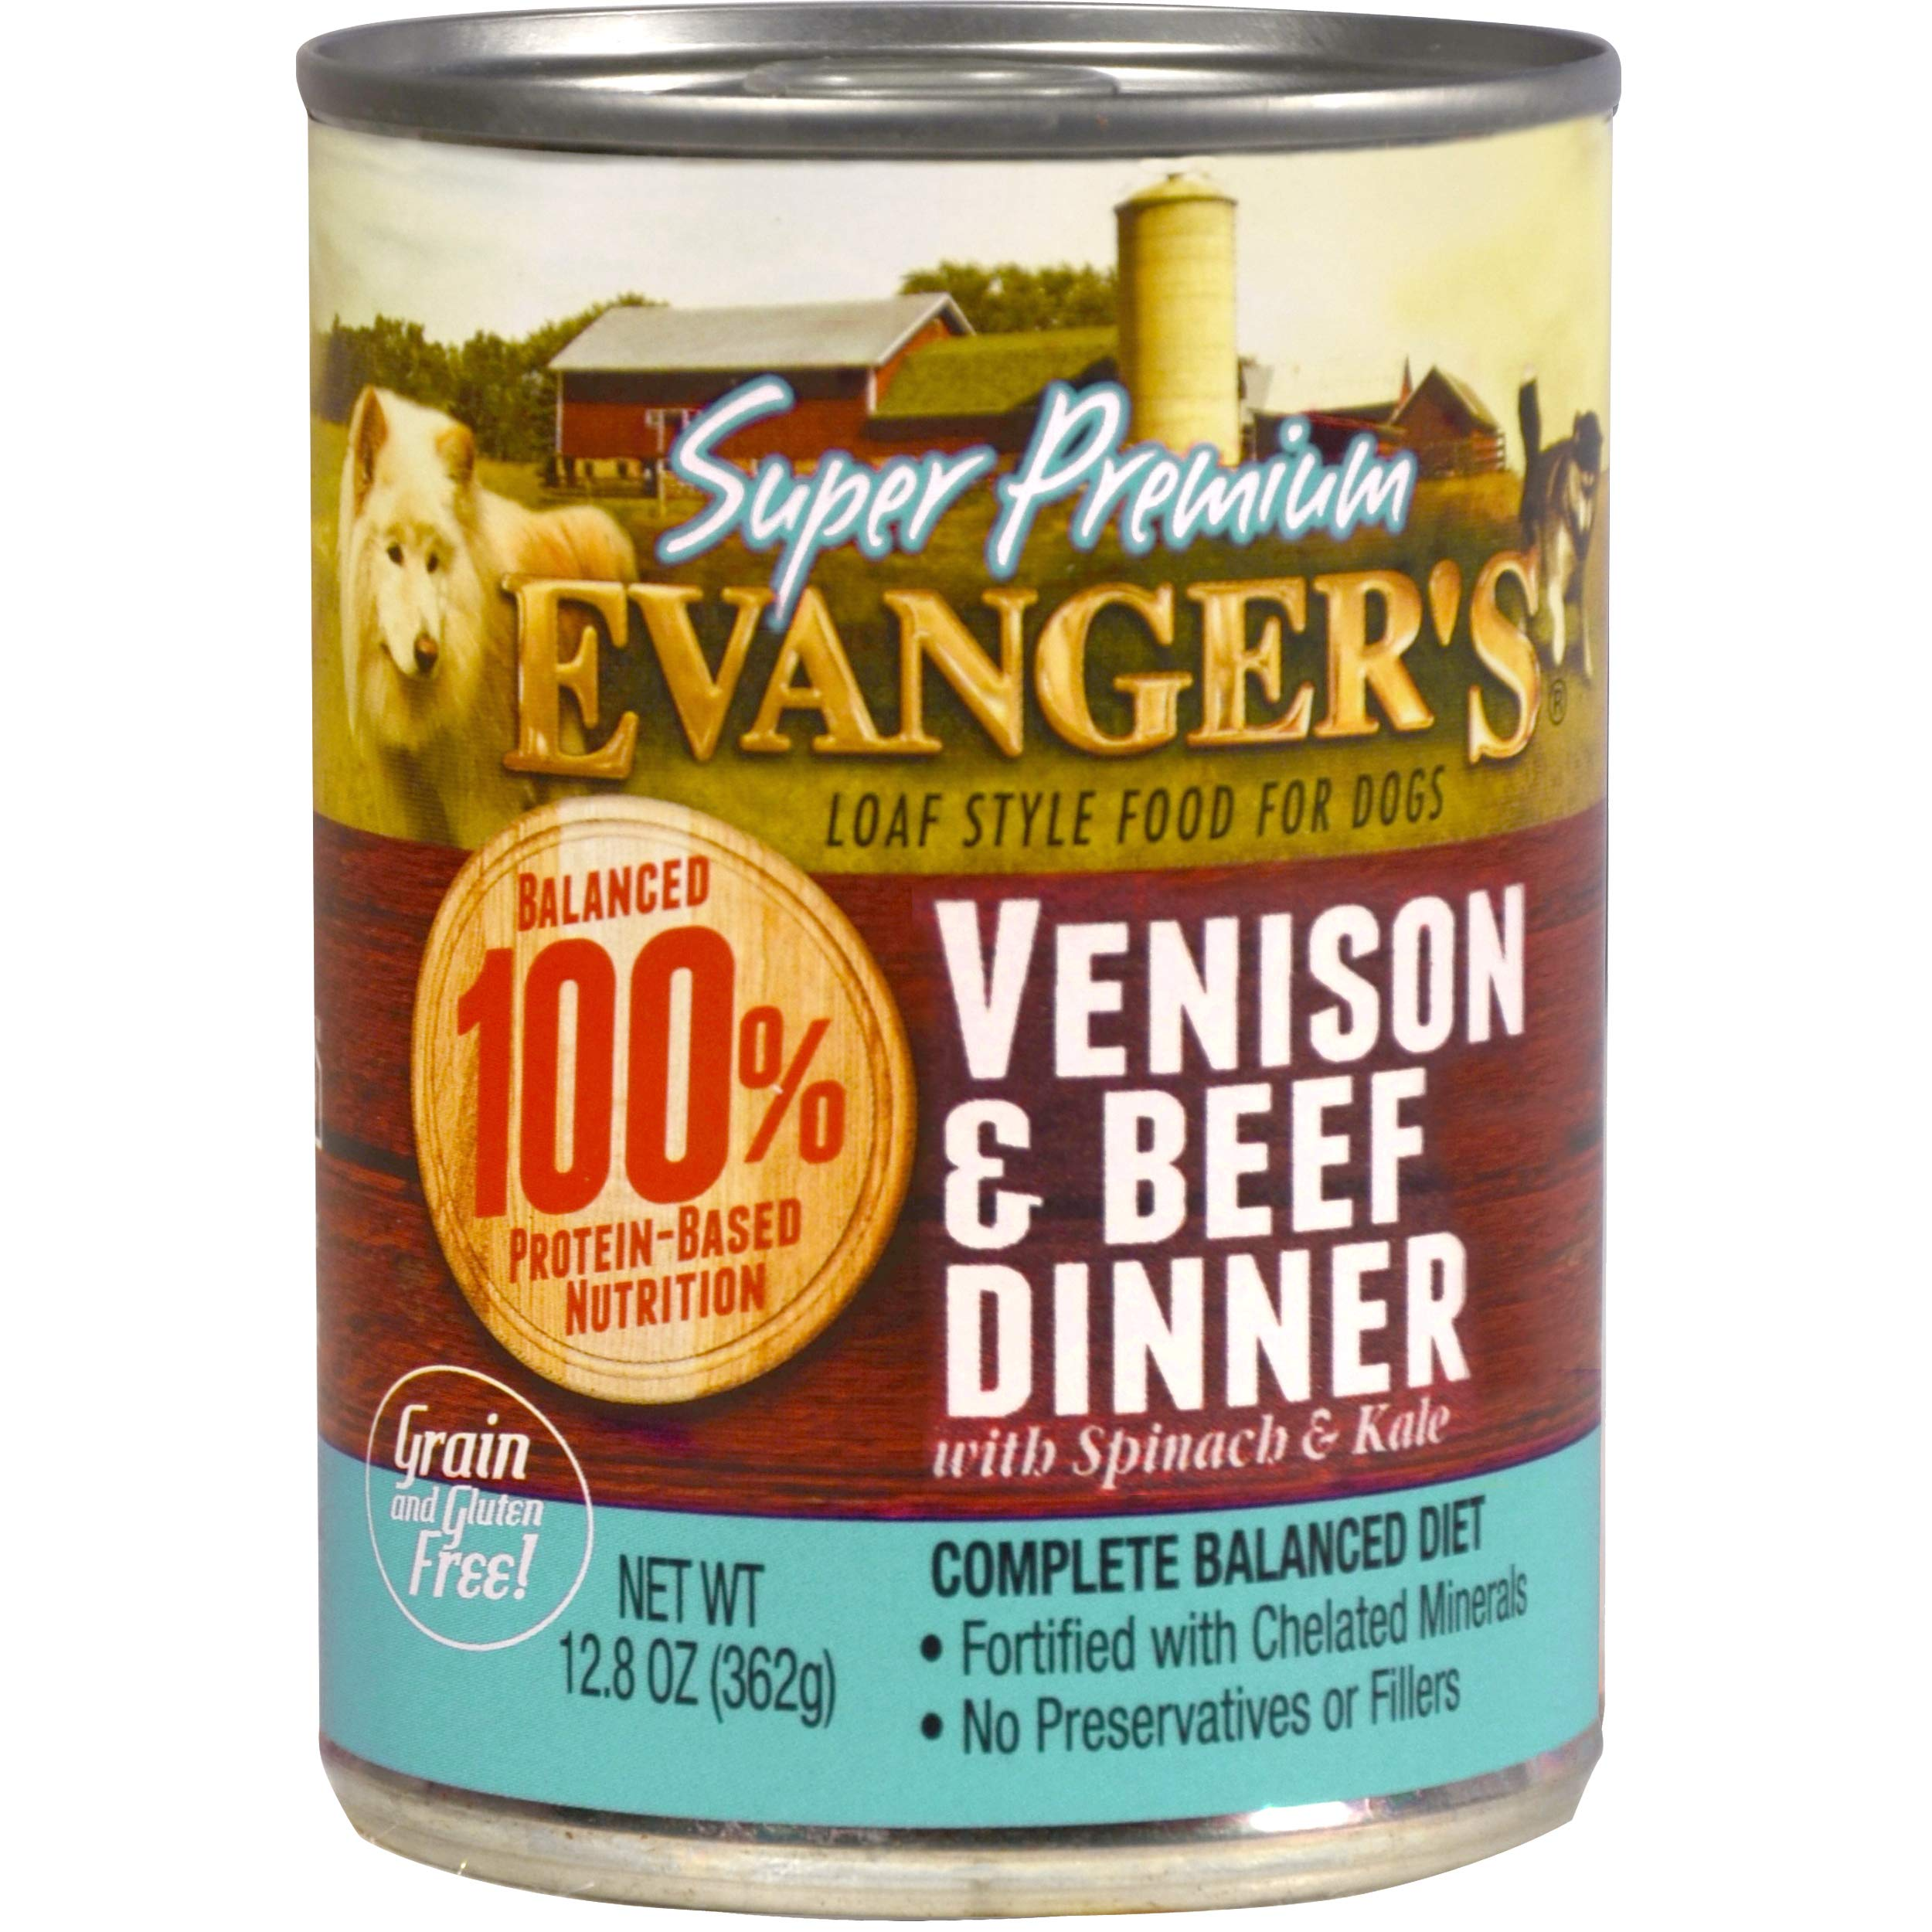 Evanger's Super Premium Venison & Beef Dinner with Spinach and Kale for Dogs, 12 x 12.8 oz cans by Evanger's Dog & Cat Food Company, Inc.